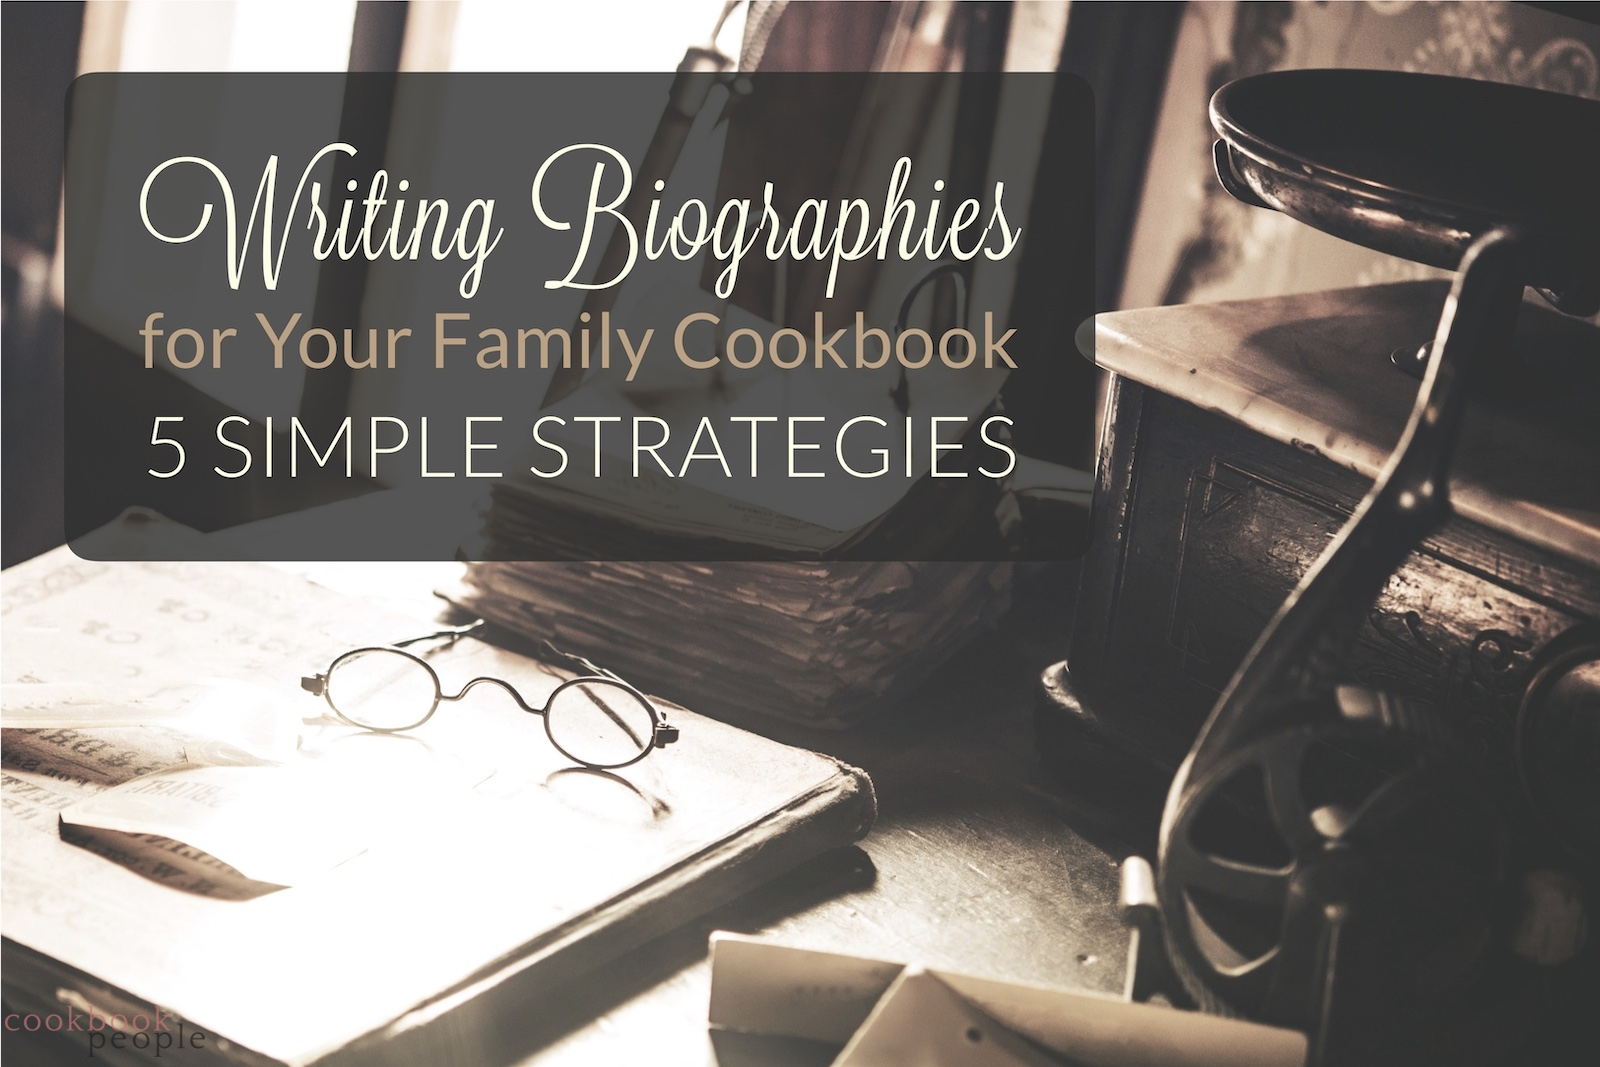 Vintage writing ephemera with text: Writing Biographies for Your Family Cookbook: 5 Simple Strategies